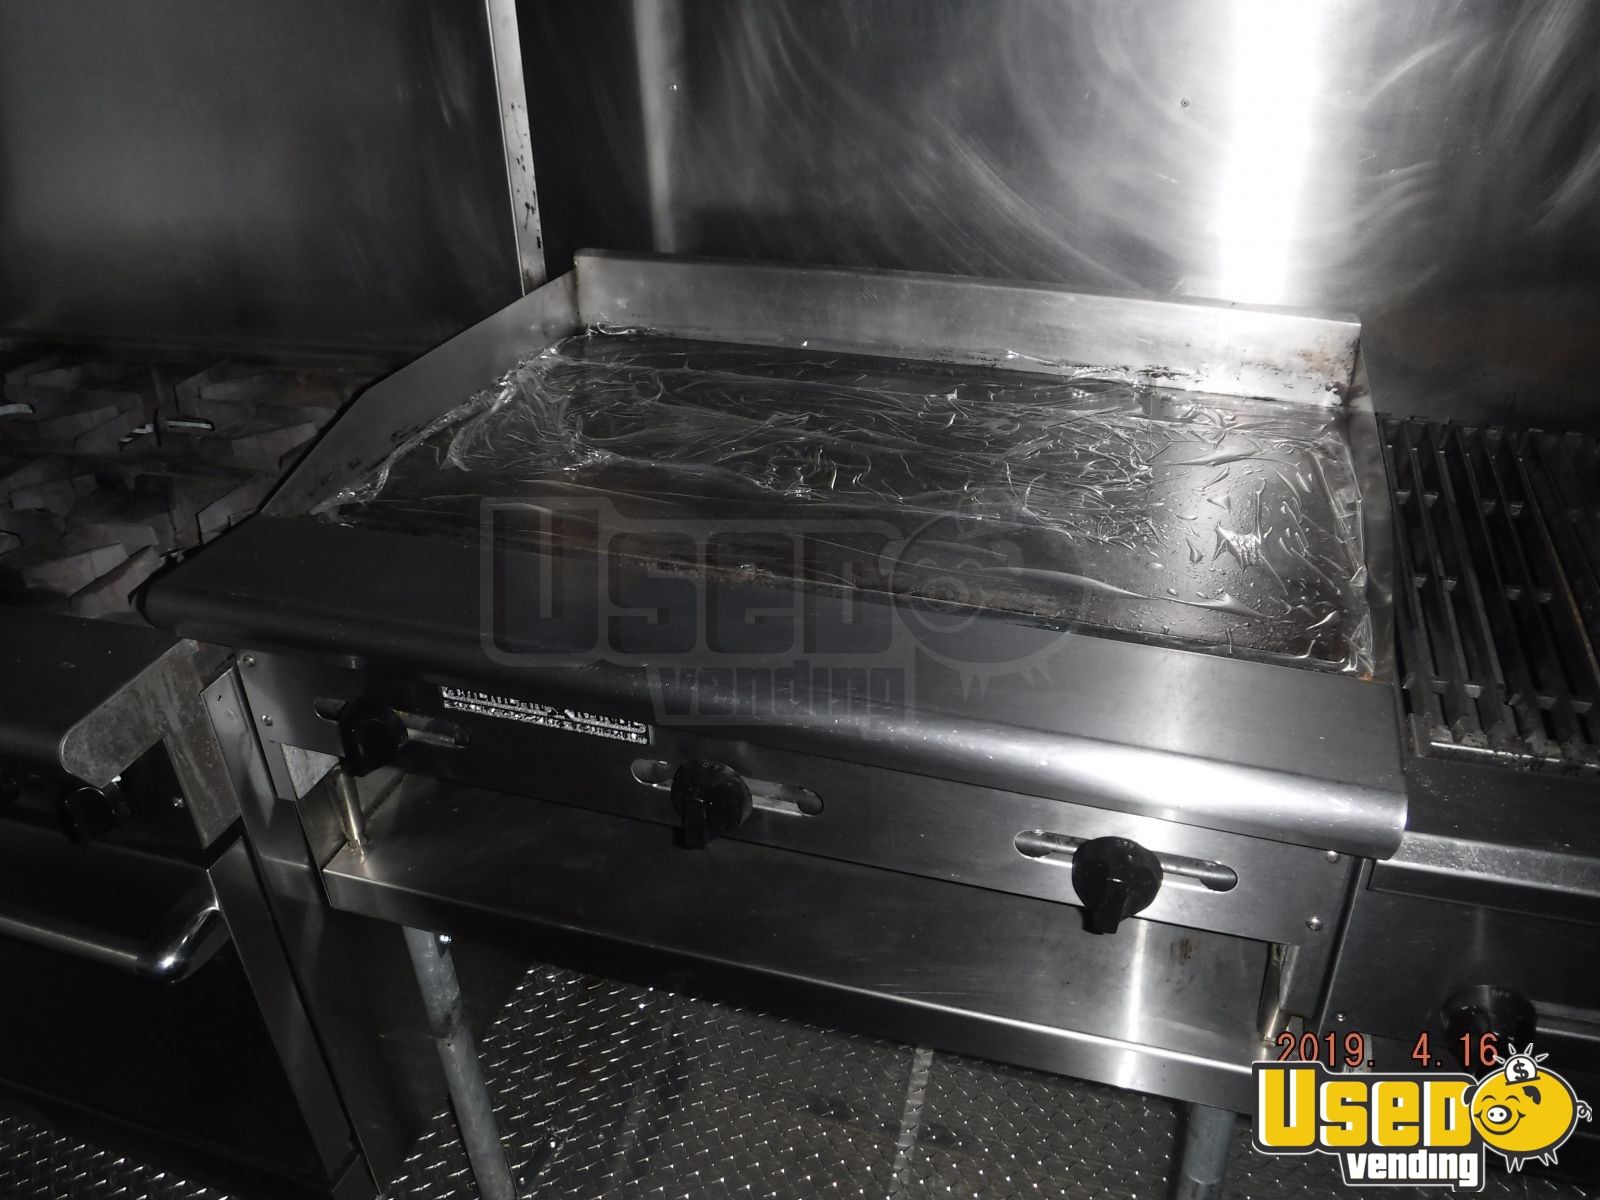 2009 Universal Magnum By California Cart Builder All-purpose Food Trailer Oven Colorado for Sale - 12